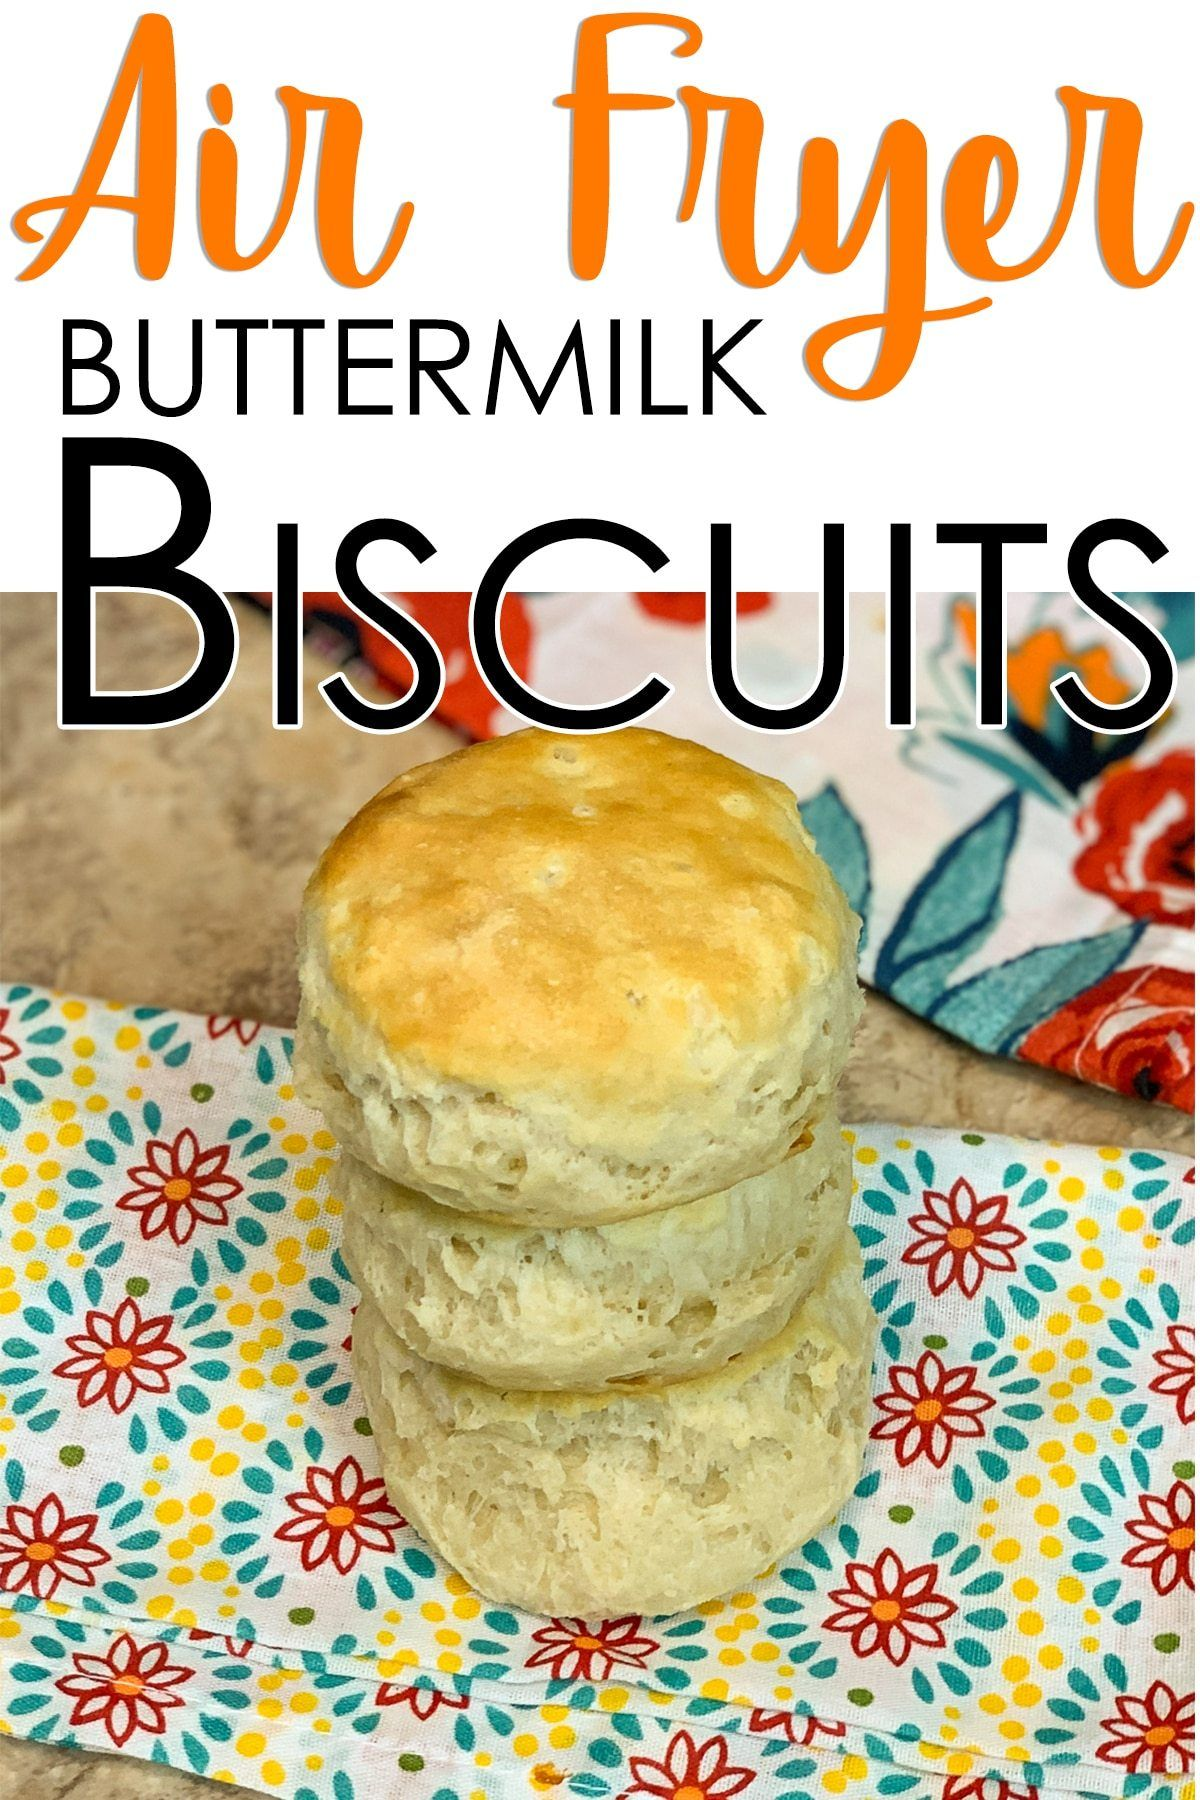 How To Make Easy Buttermilk Air Fryer Biscuits Recipe Air Fryer Recipes Air Fryer Recipes Easy Homemade Buttermilk Biscuits